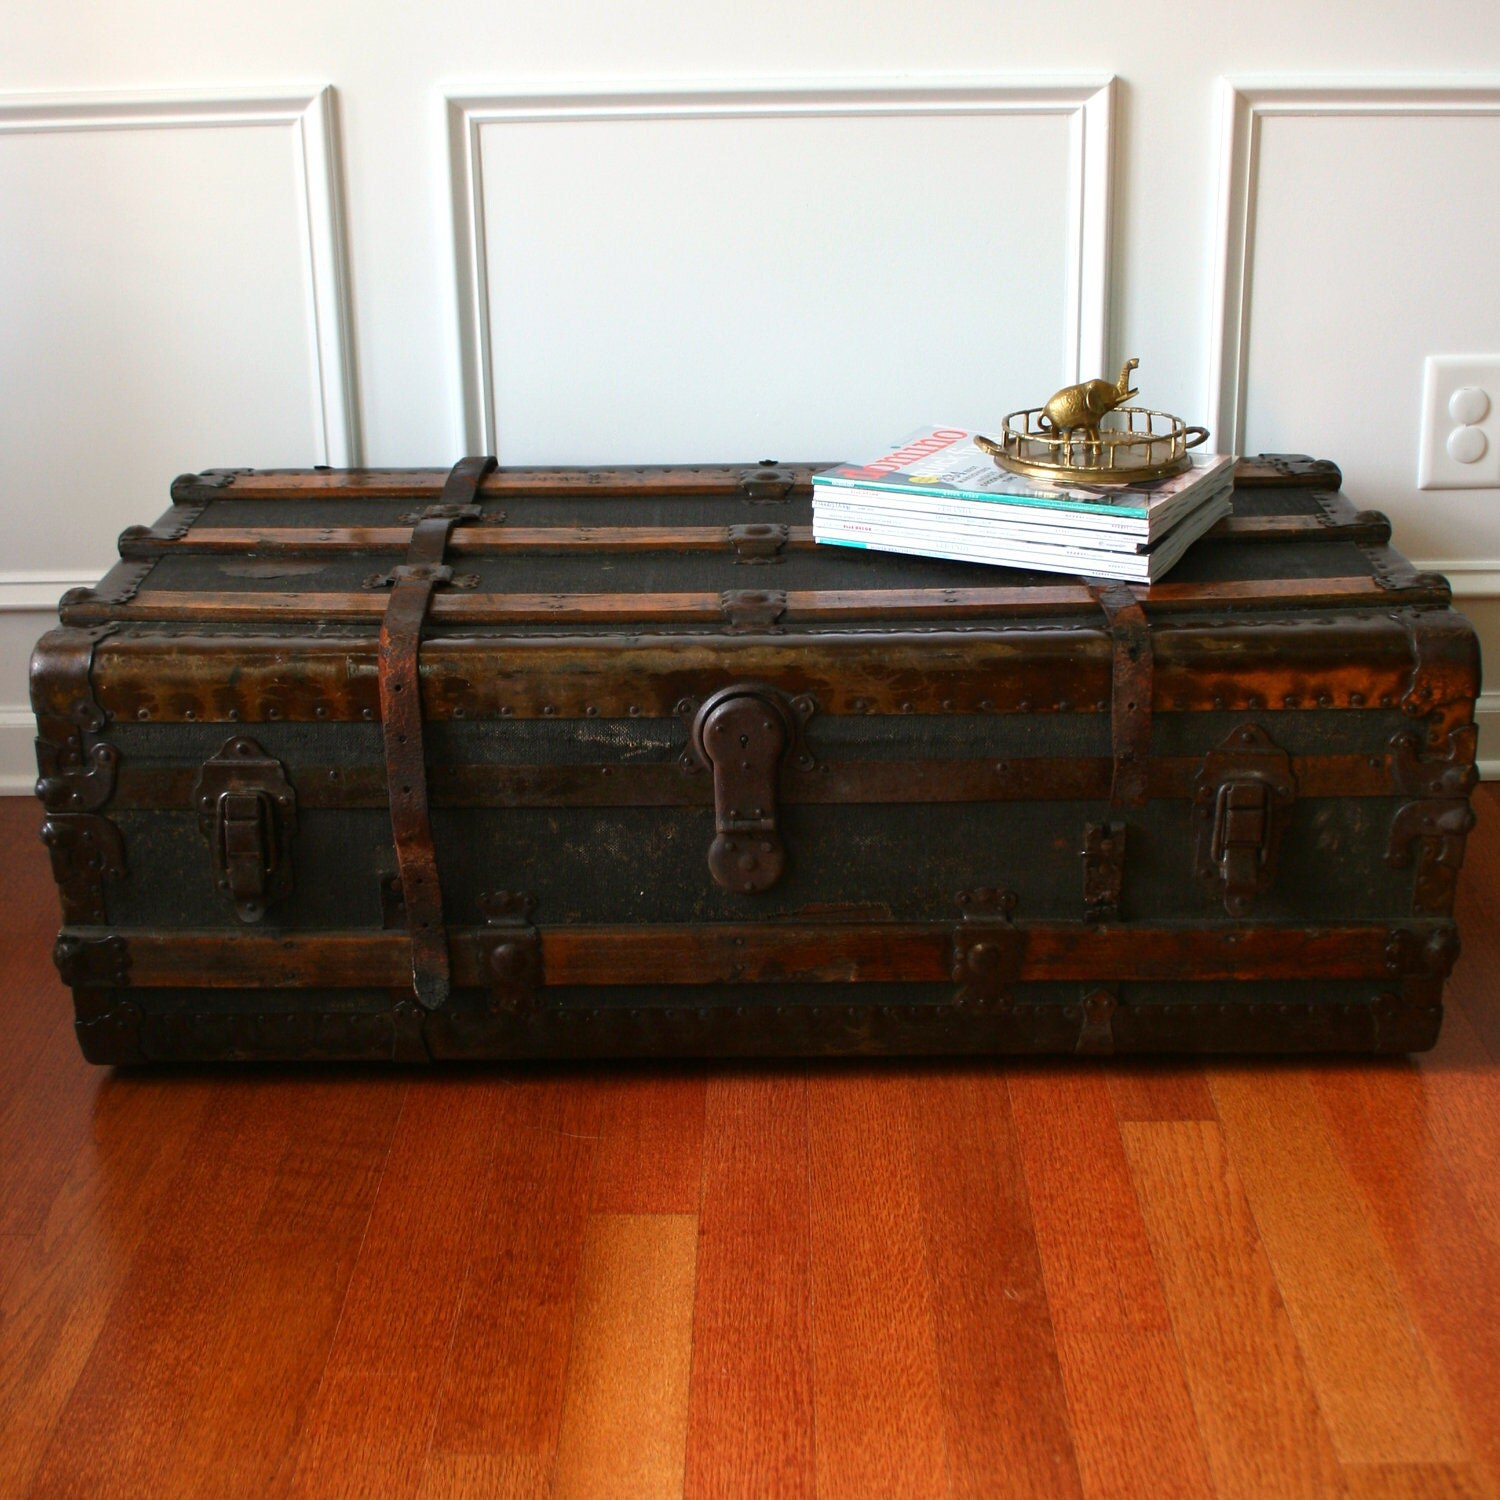 Huge Antique Steamer Trunk Coffee Table Flat By Rhapsodyattic